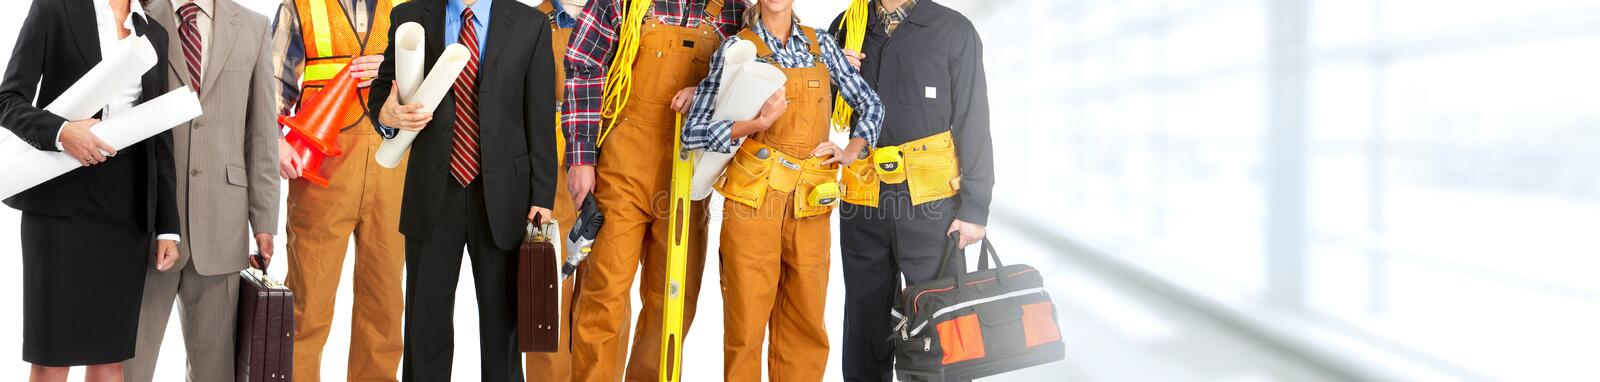 Construction workers team stock photos